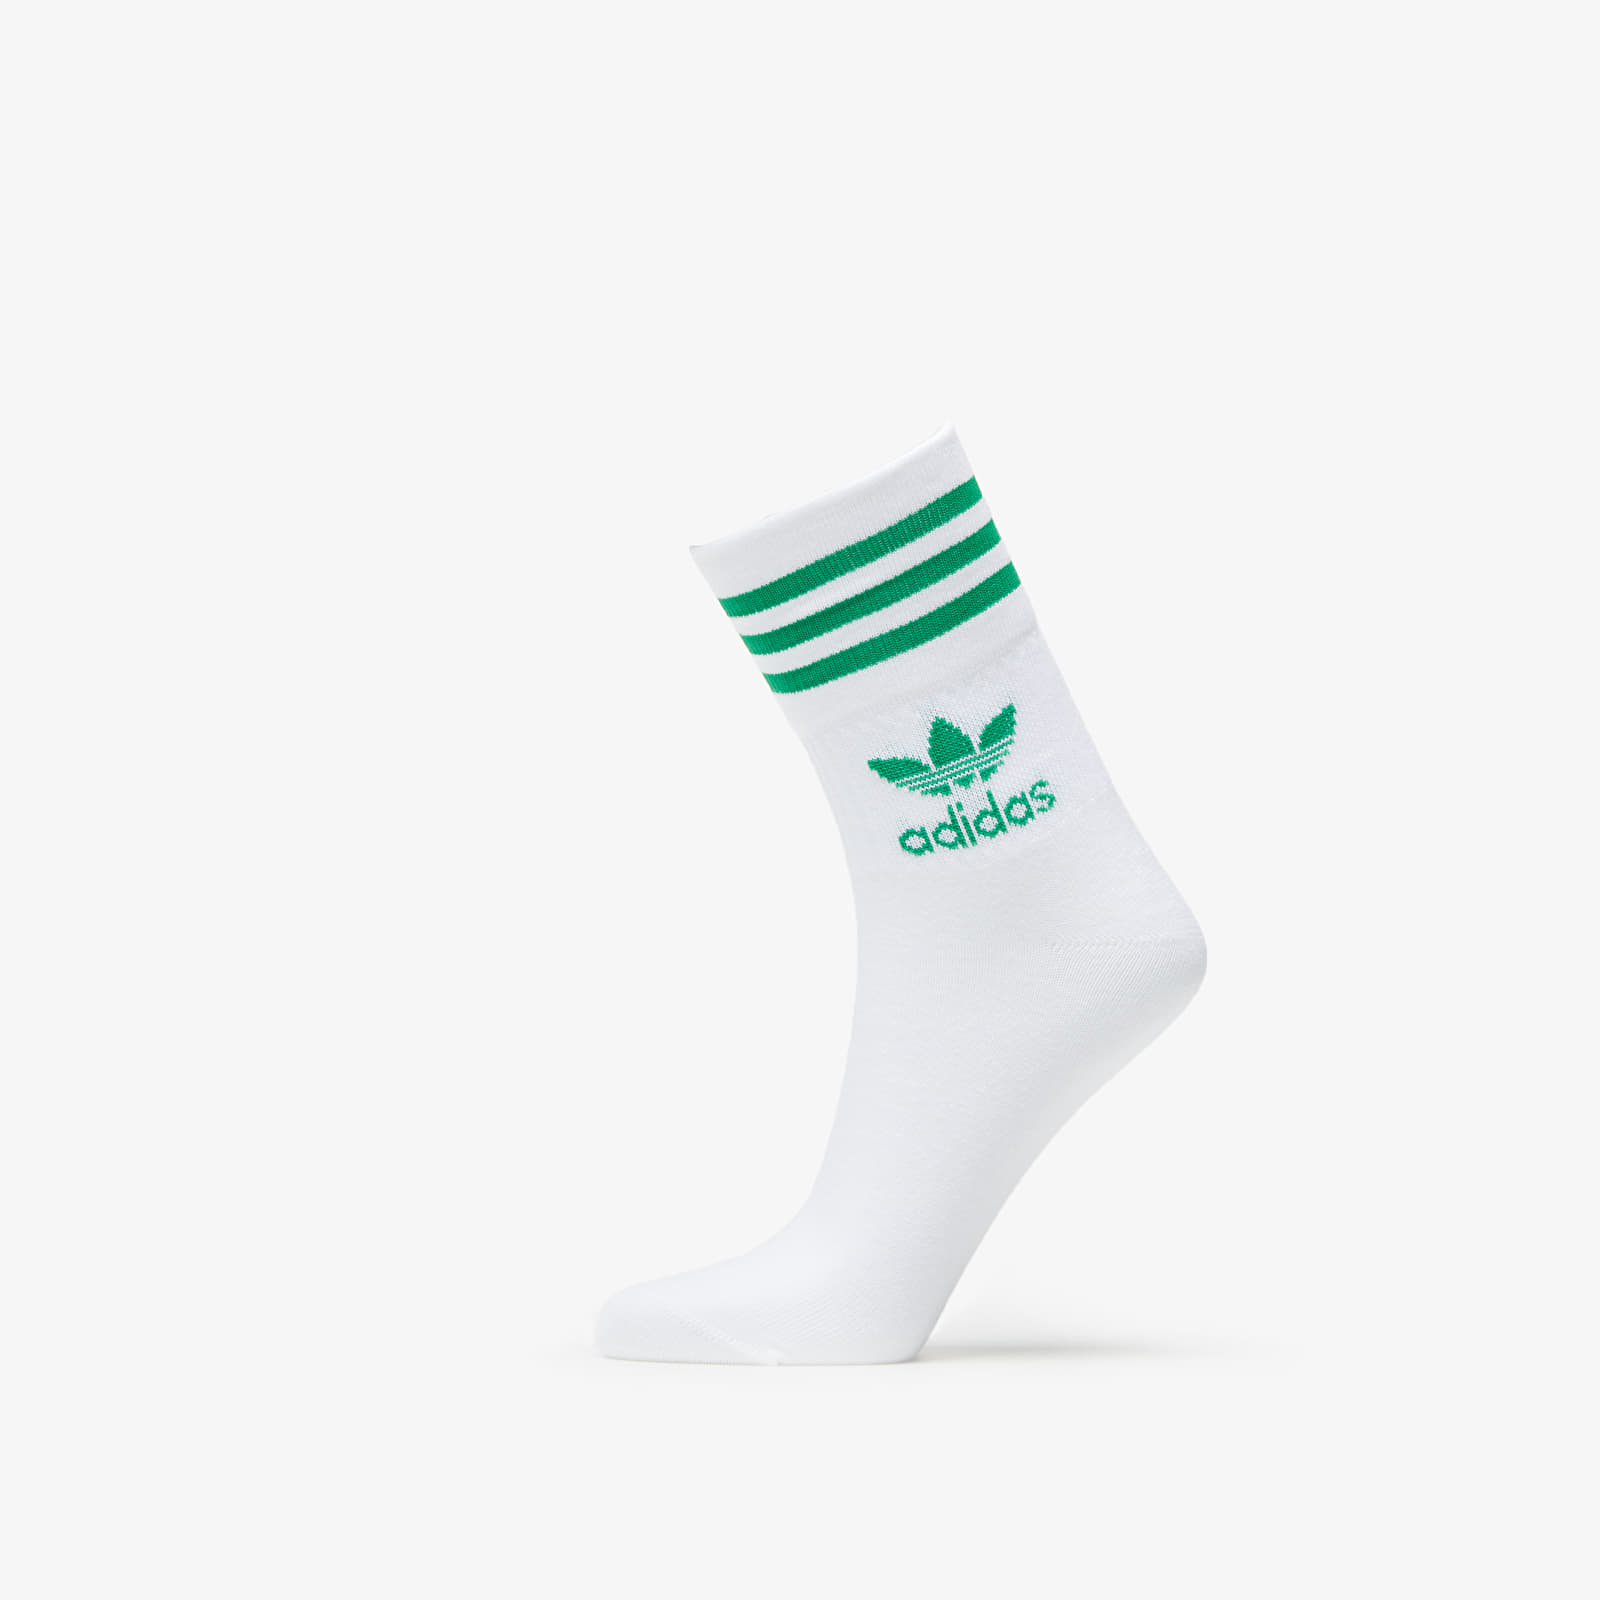 Chaussettes adidas Mid Cut Crew Socks (3-pack) White/ Scarle